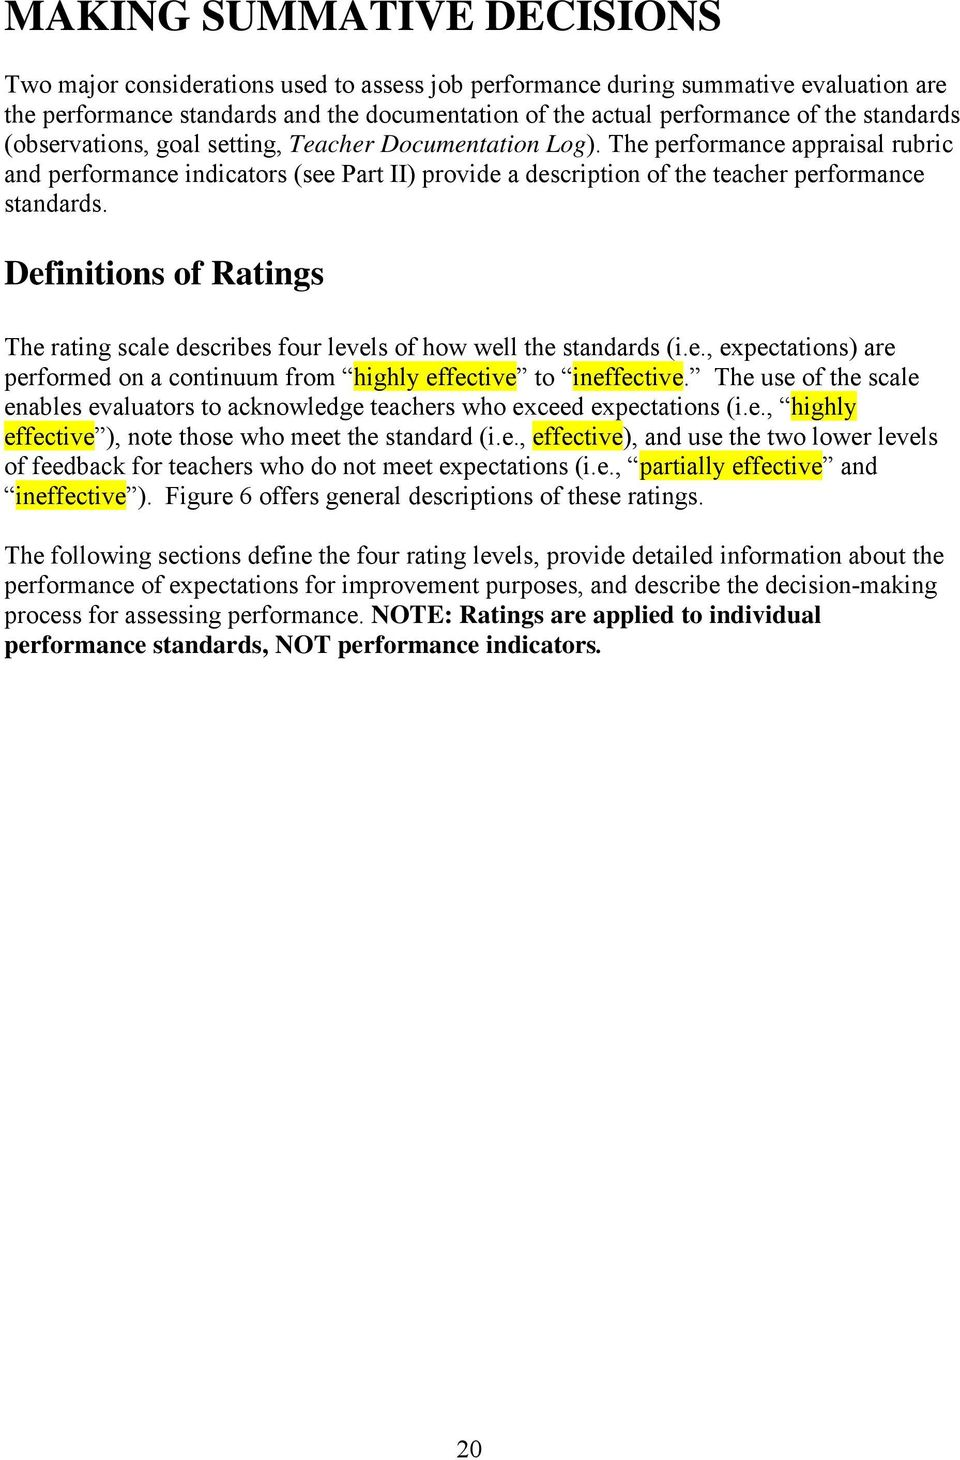 Definitions of Ratings The rating scale describes four levels of how well the standards (i.e., expectations) are performed on a continuum from highly effective to ineffective.